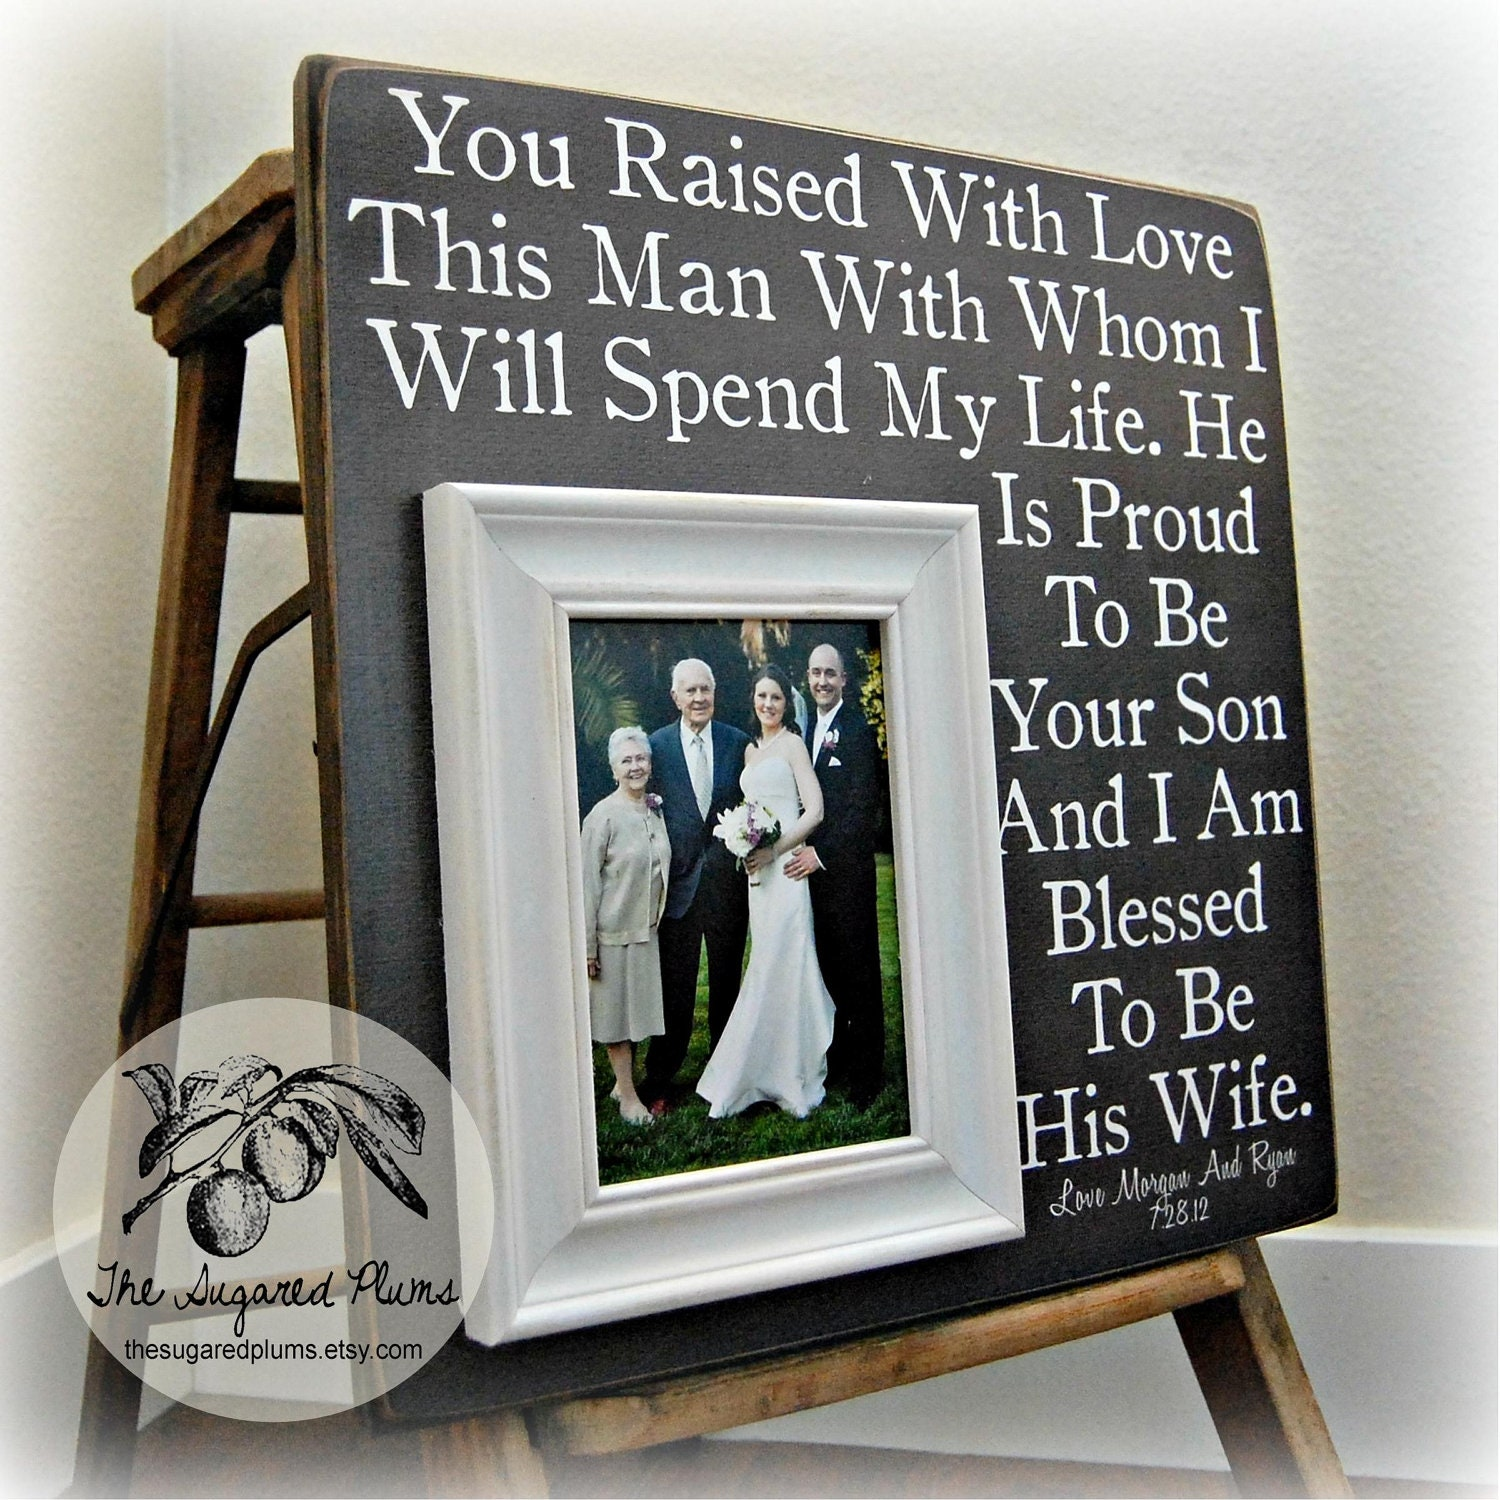 Wedding Gifts Mother Groom : Parents of the Groom Gift Mother of the Groom by thesugaredplums